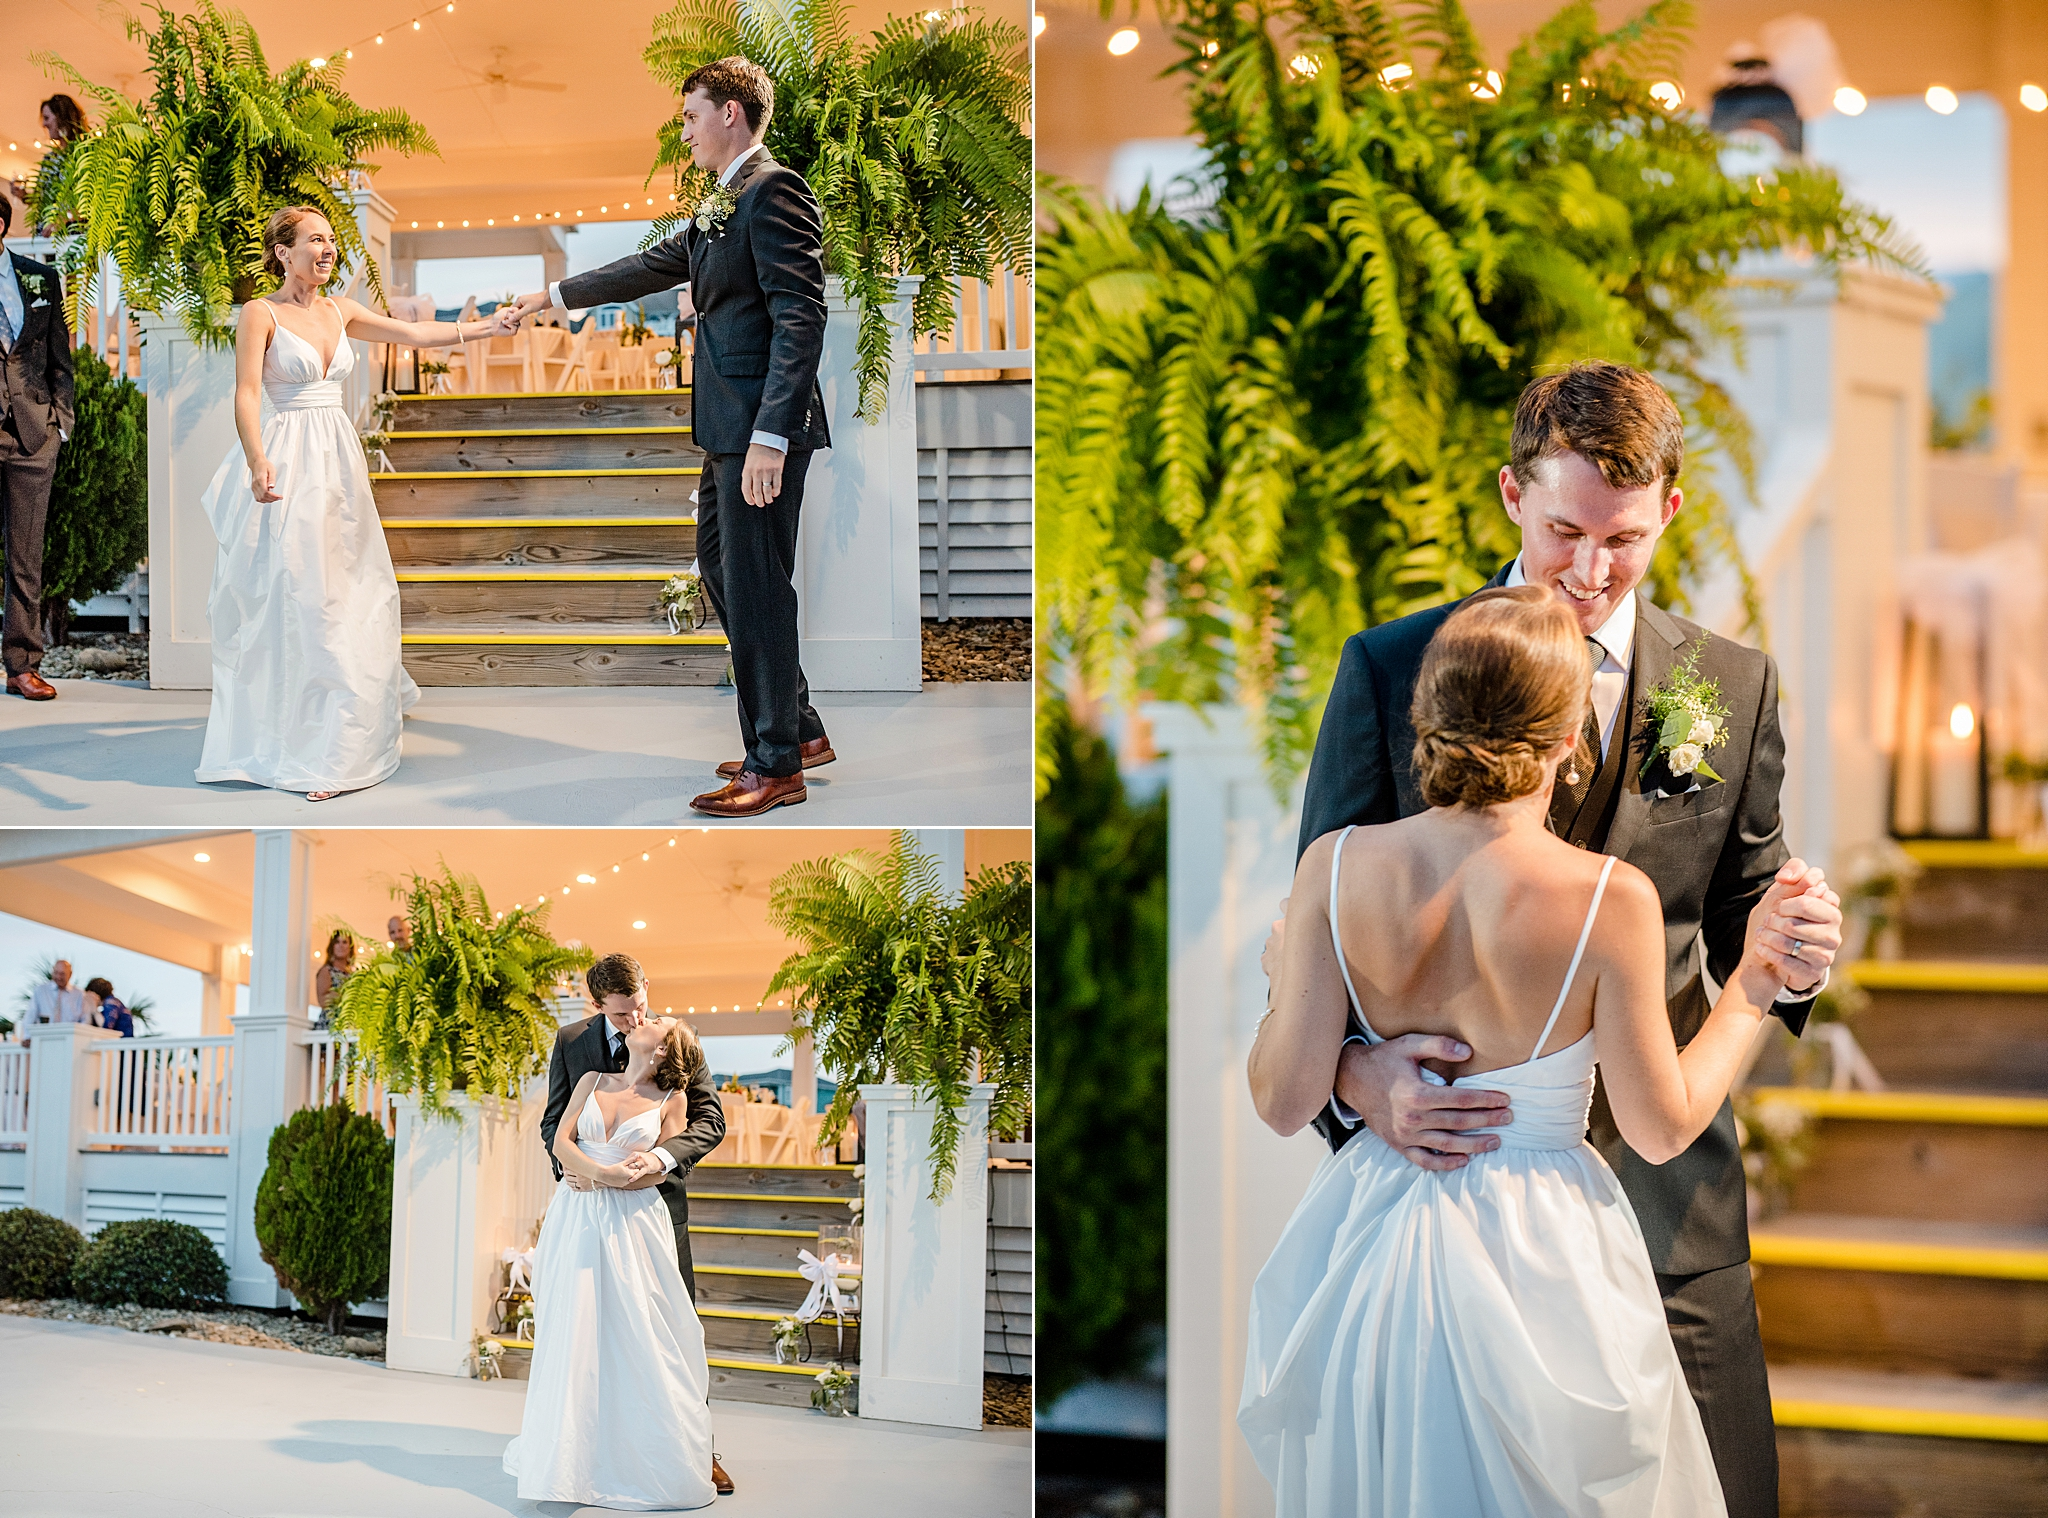 emeraldisleweddingphotographer_0291.jpg